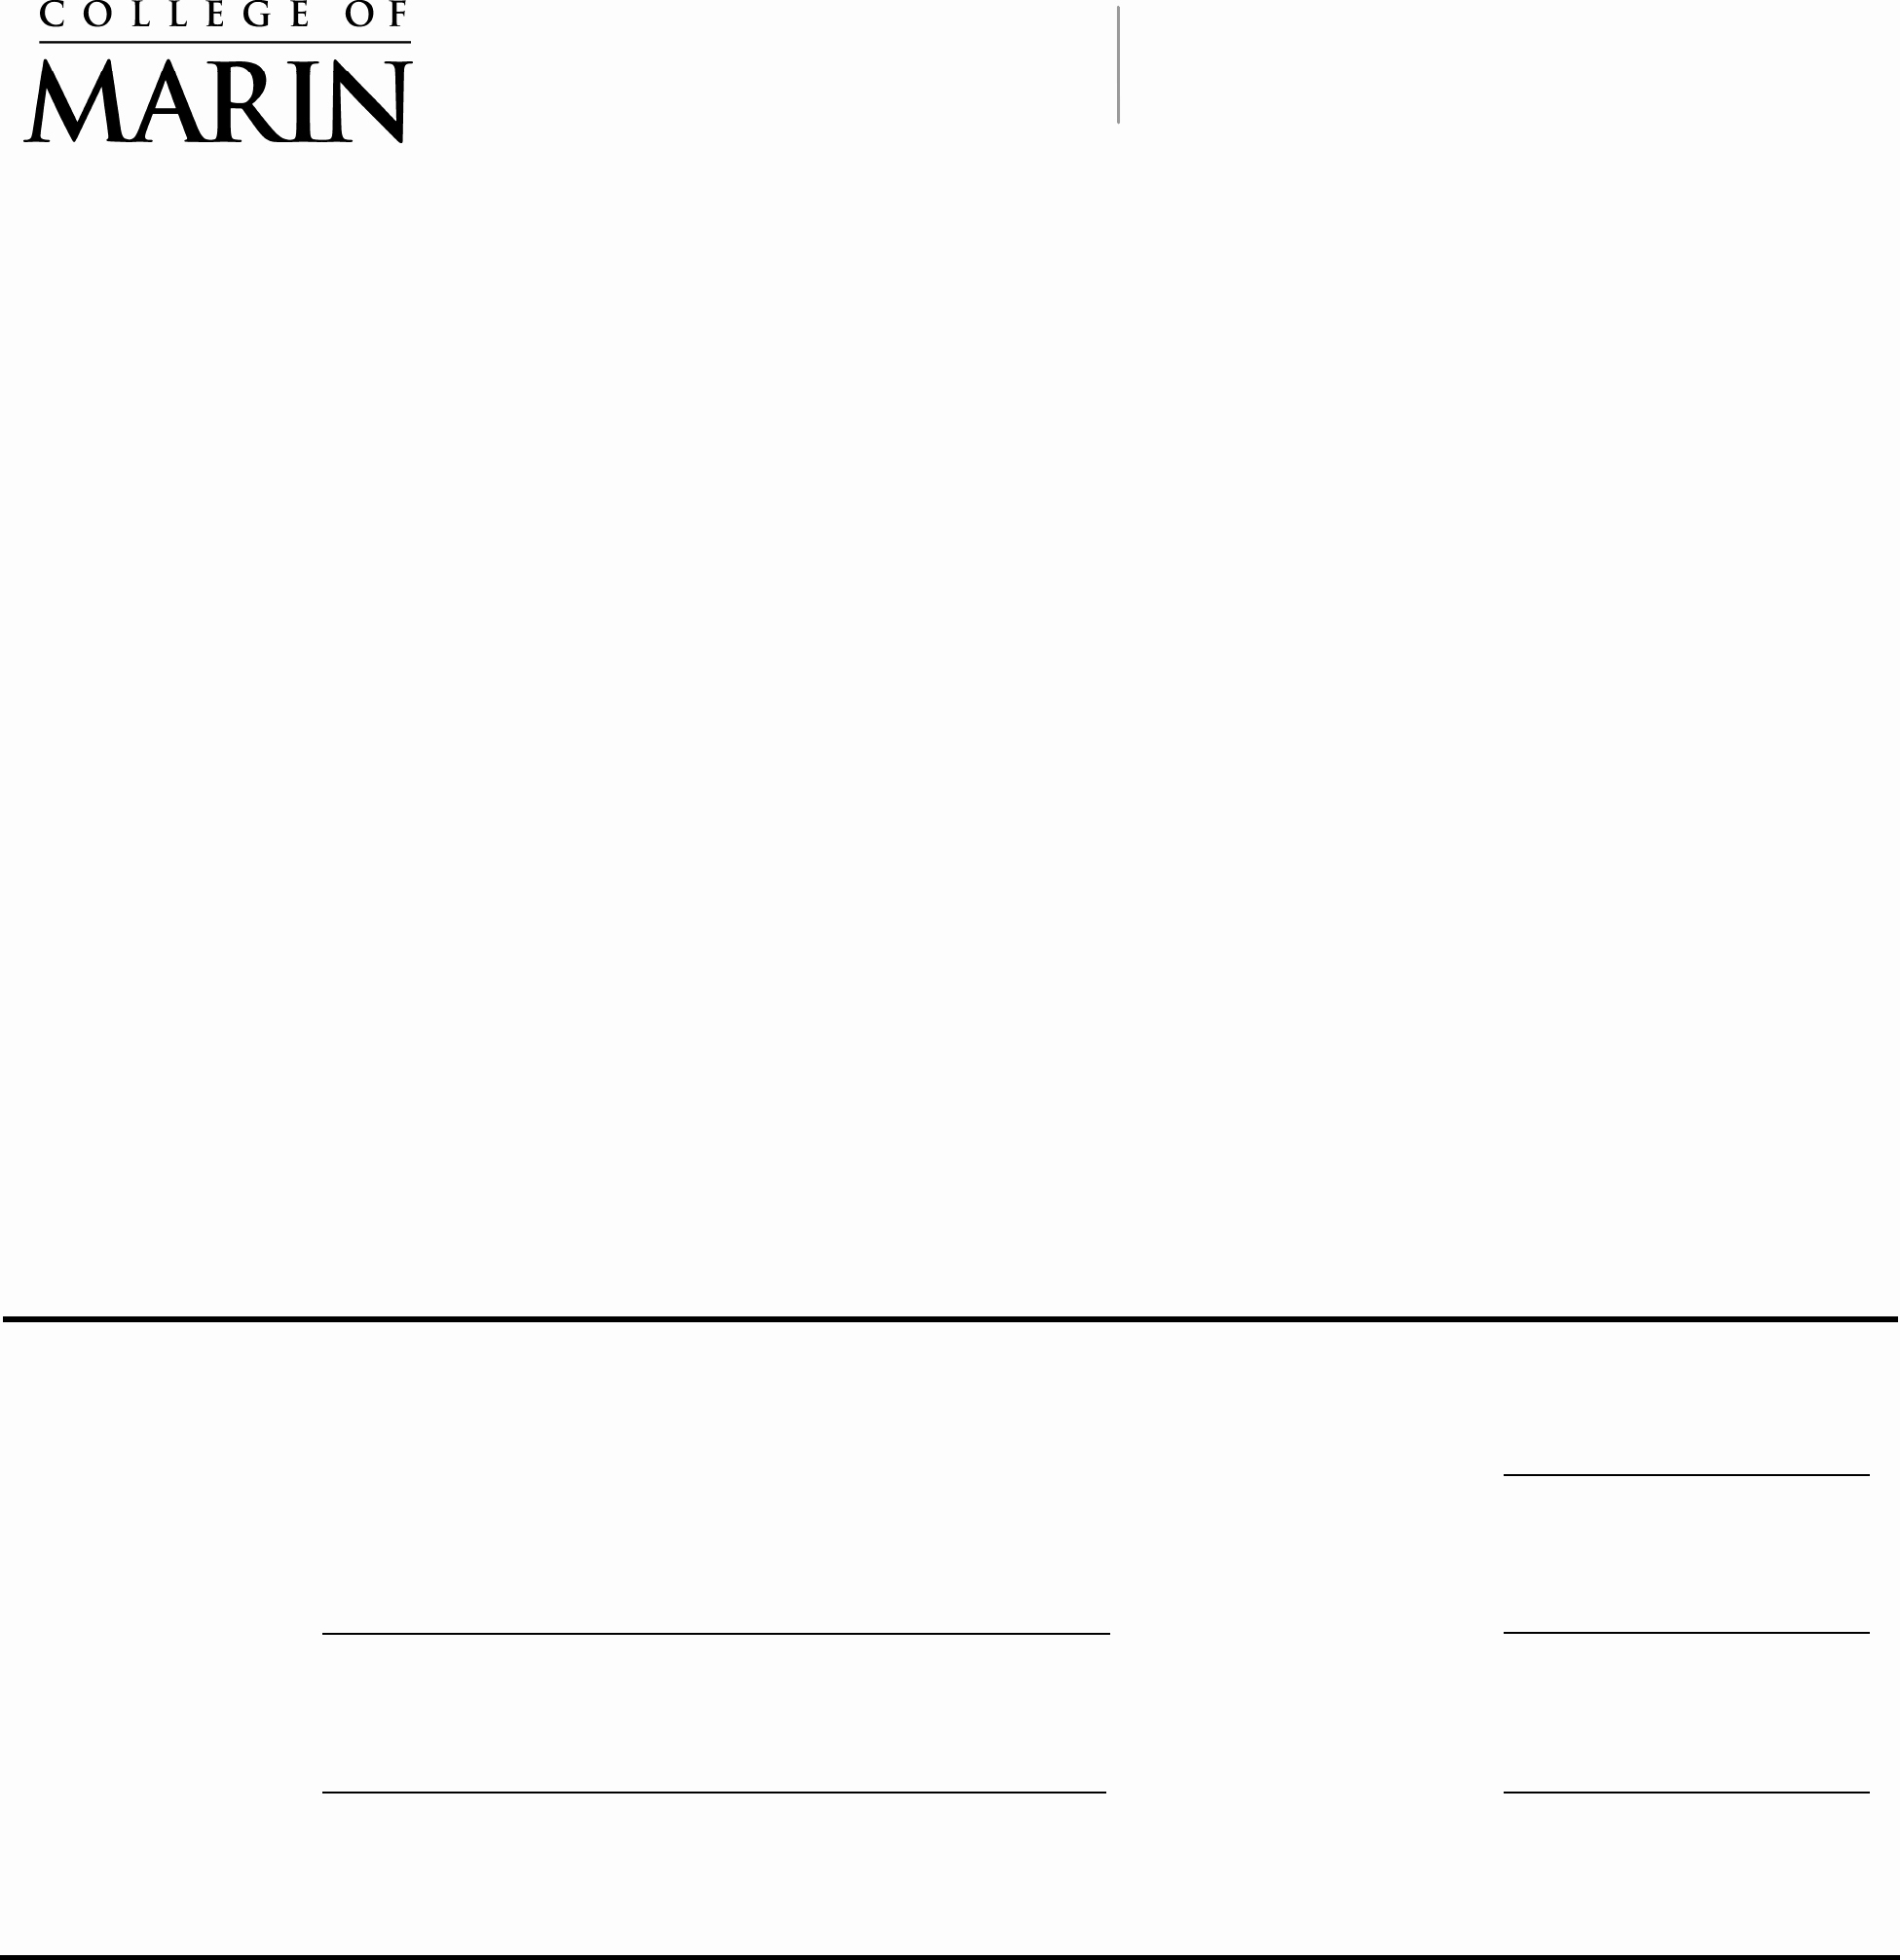 Print A Fax Cover Sheet Best Of Template for Fax Cover Sheet Choice Image Professional